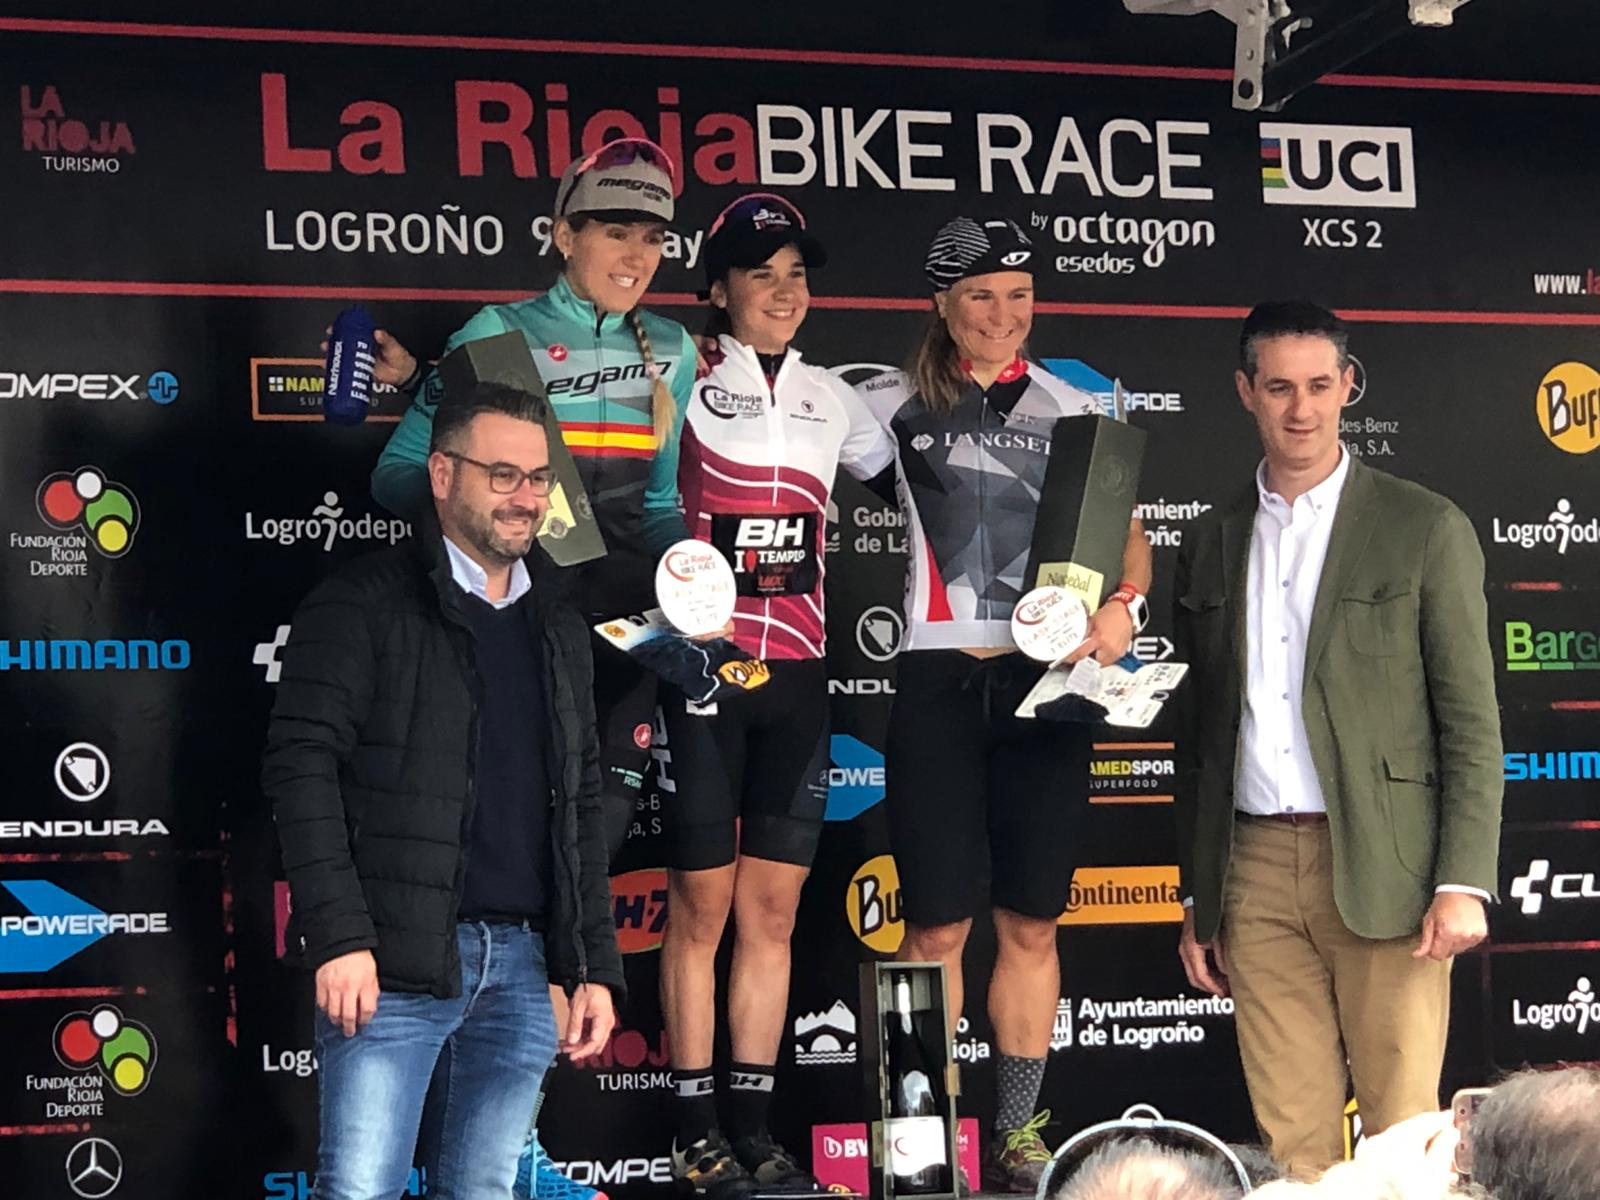 primer podium elite femenino rioja bike race 2019